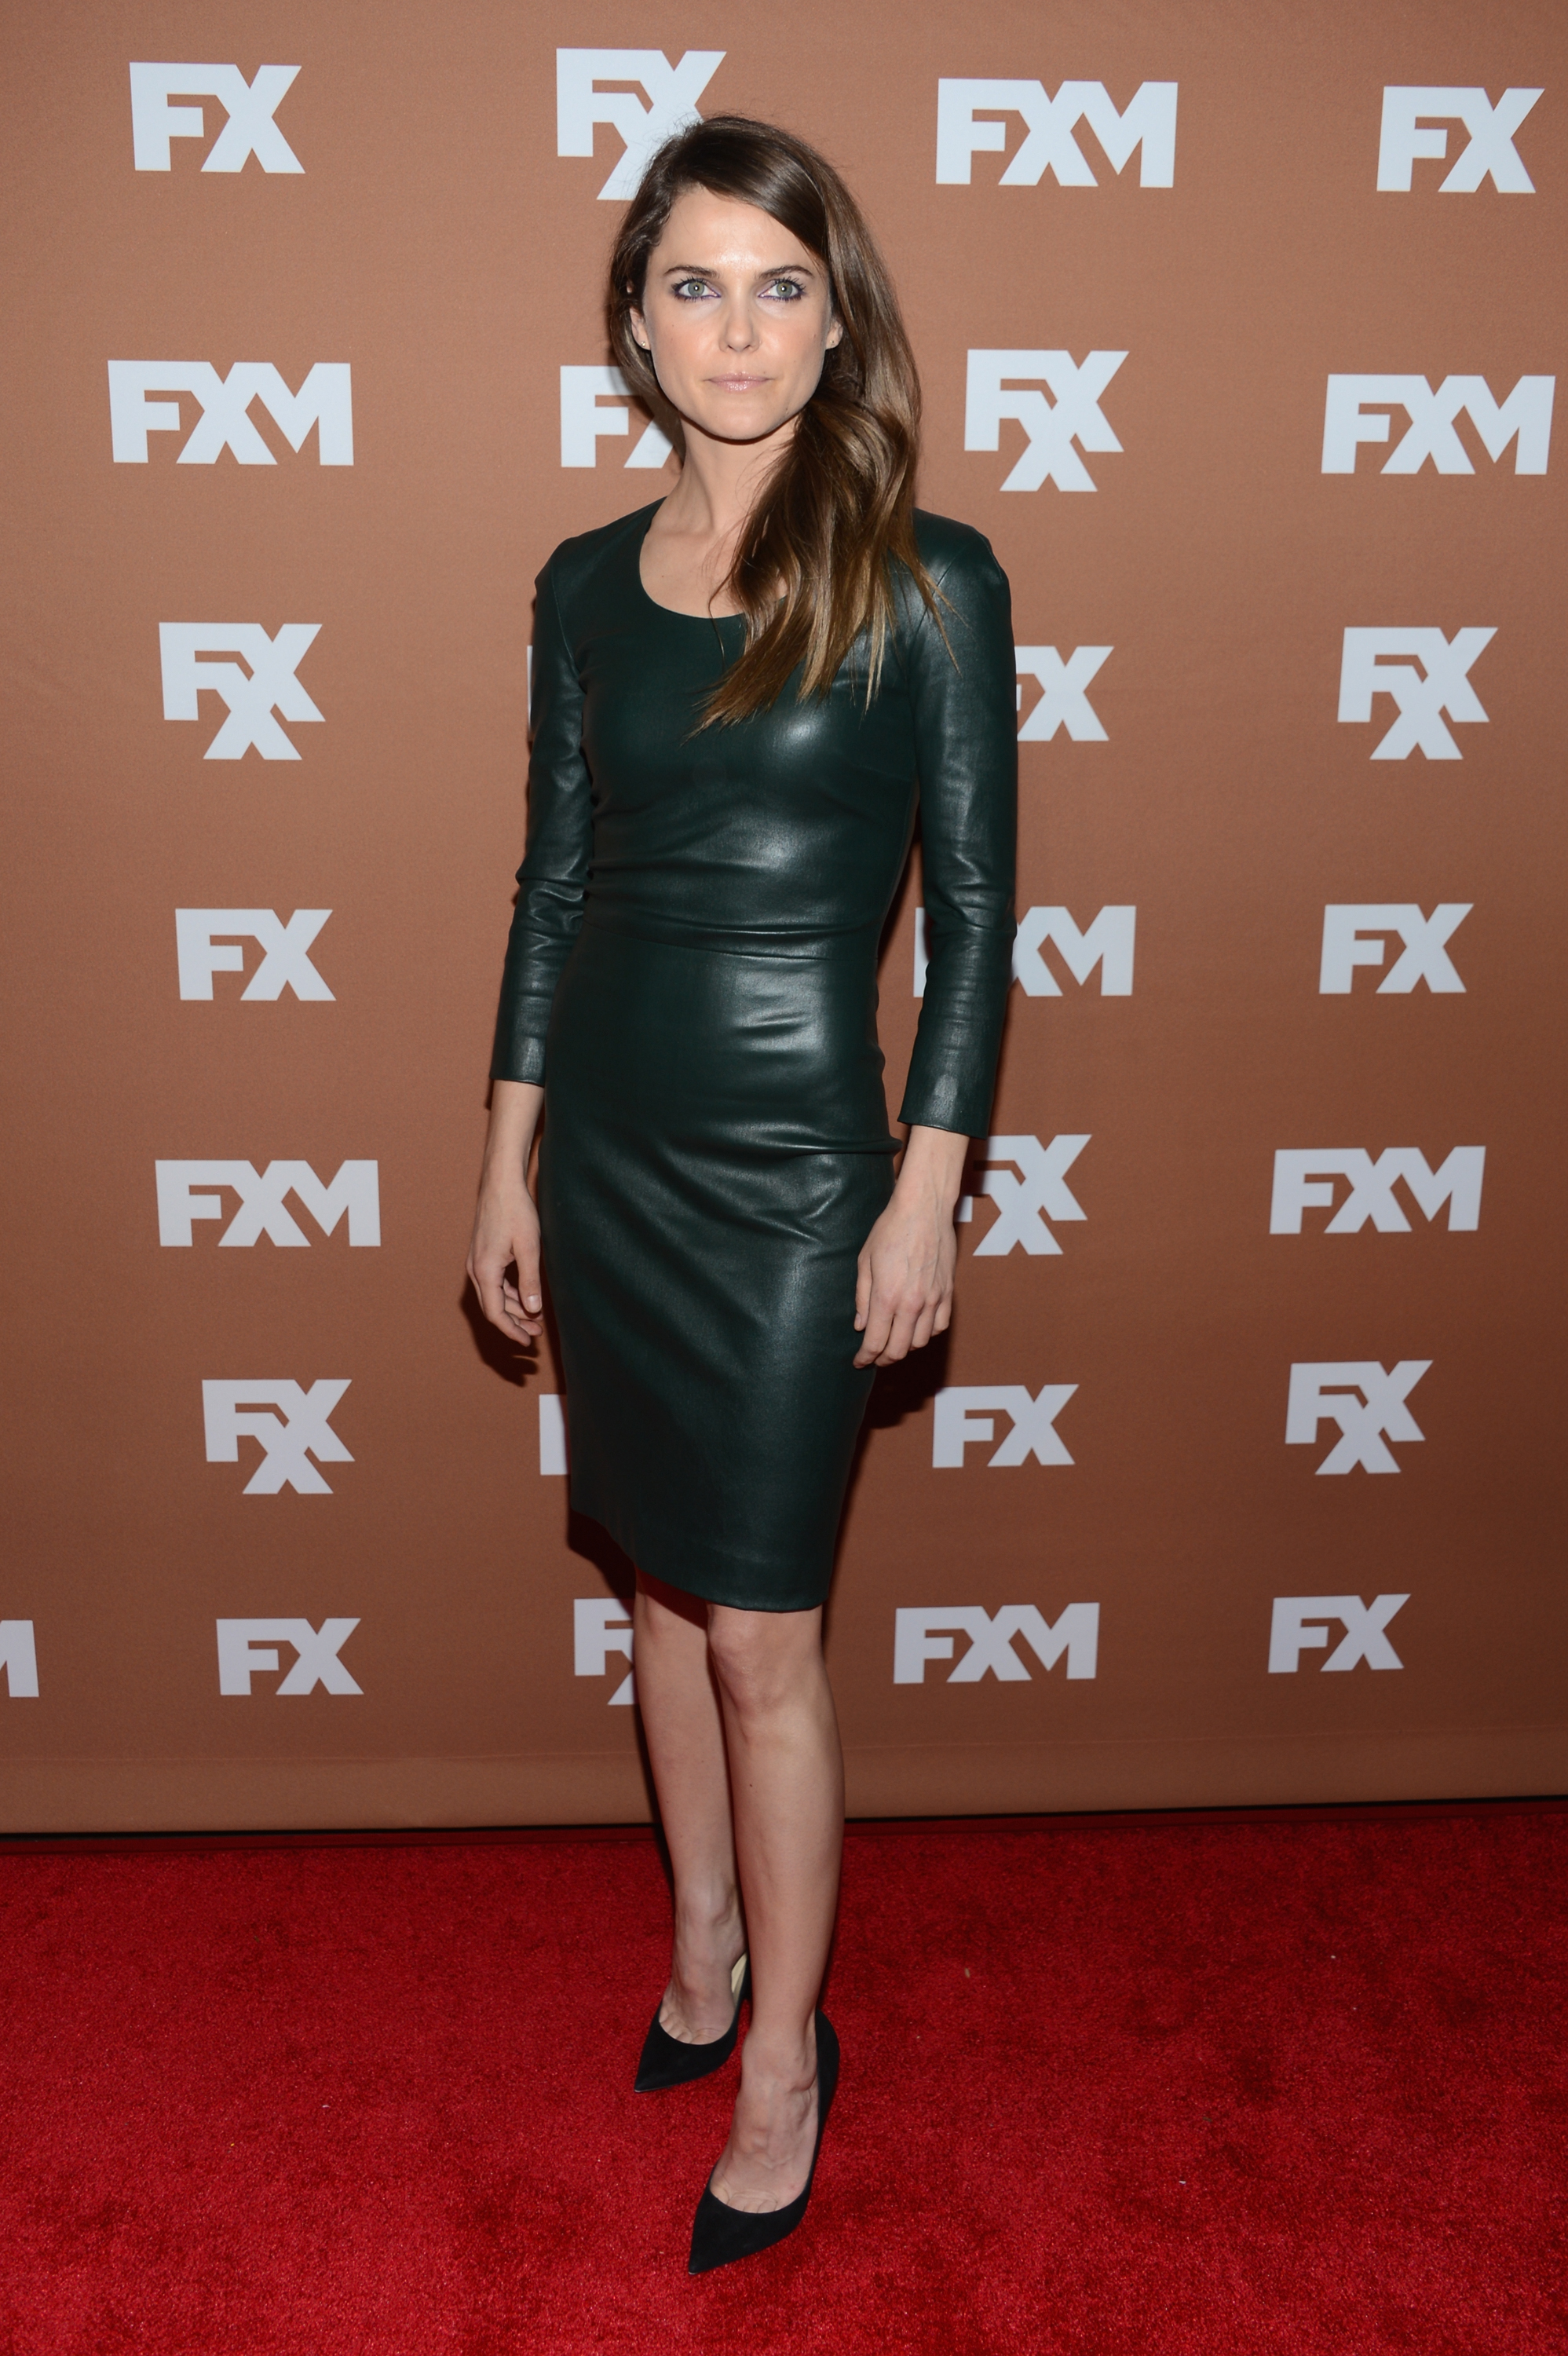 Keri Russell made a showstopping arrival at an FX event in NYC, stepping out in a body-conscious leather sheath dress.